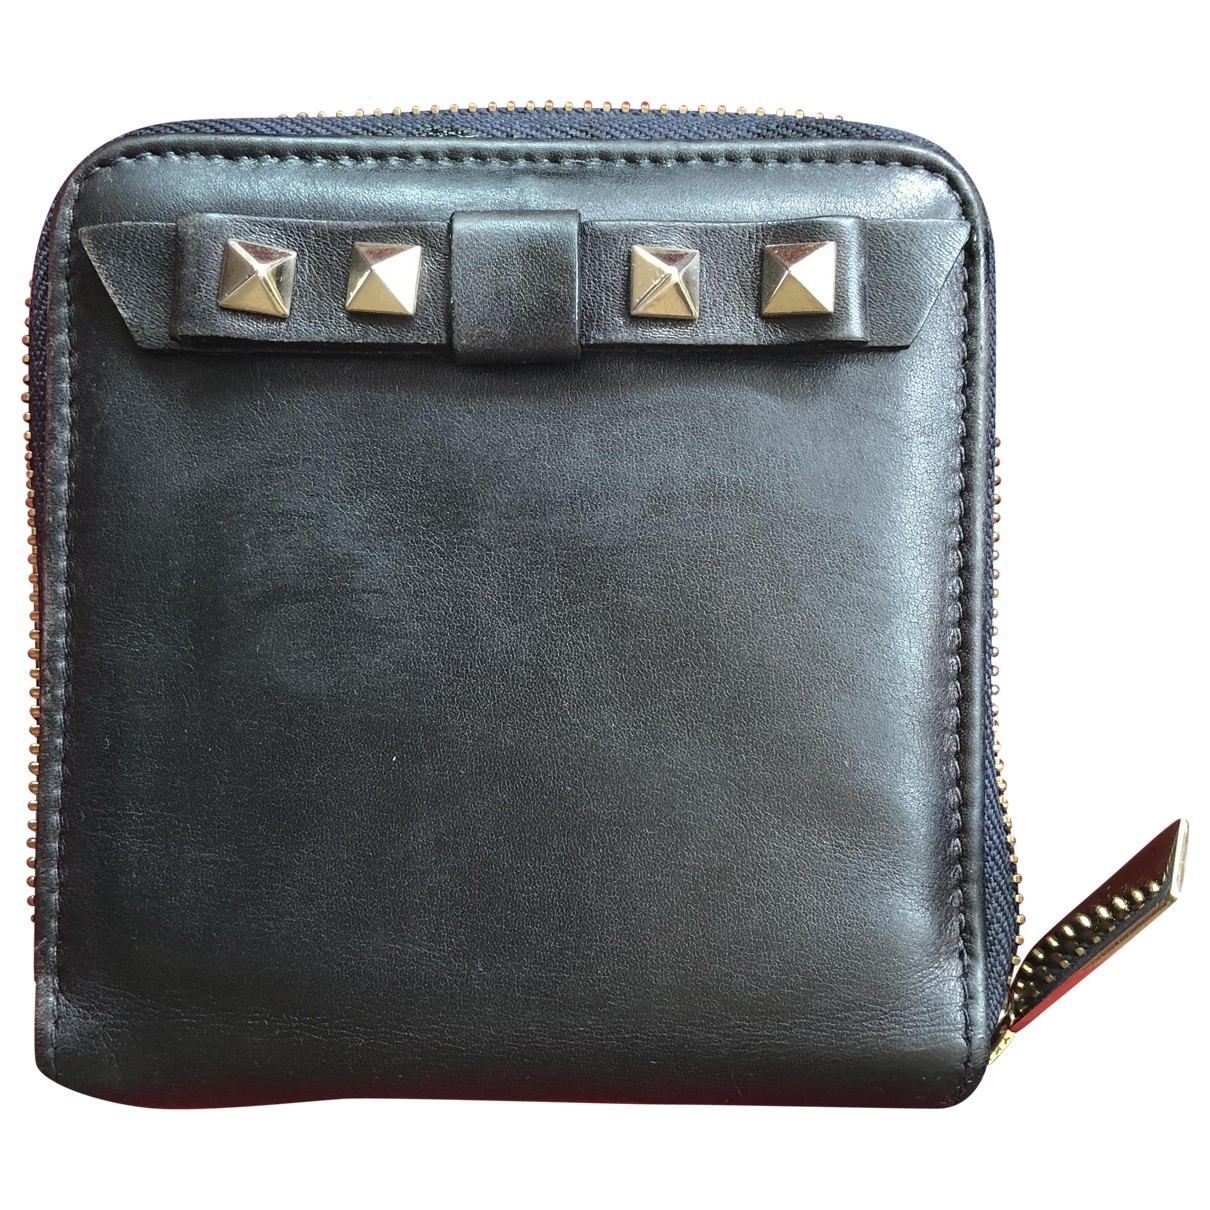 Valentino Garavani \N Black Leather wallet for Women \N